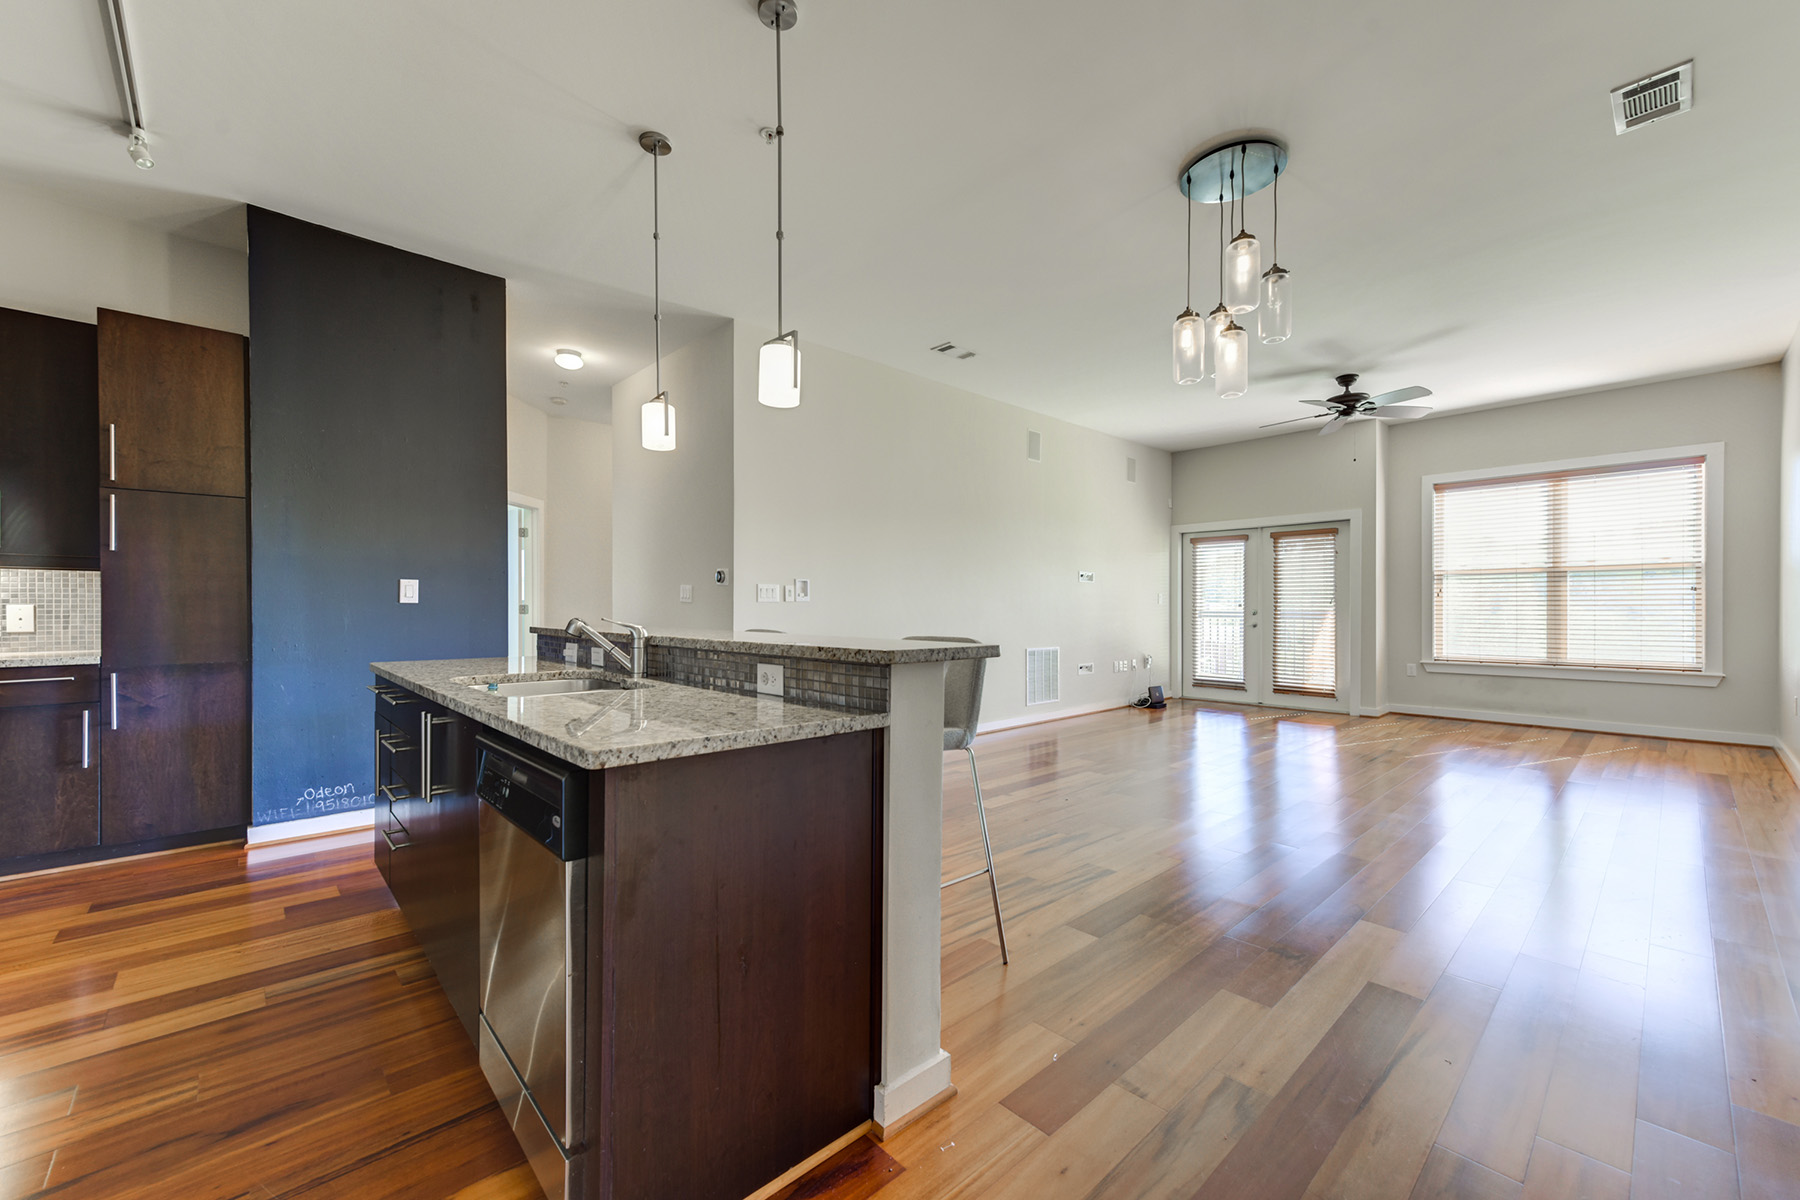 Condominium for Rent at Amazing Opportunity to Live in The Heart of Inman Park! 870 Inman Village Parkway #434 Atlanta, Georgia 30307 United States